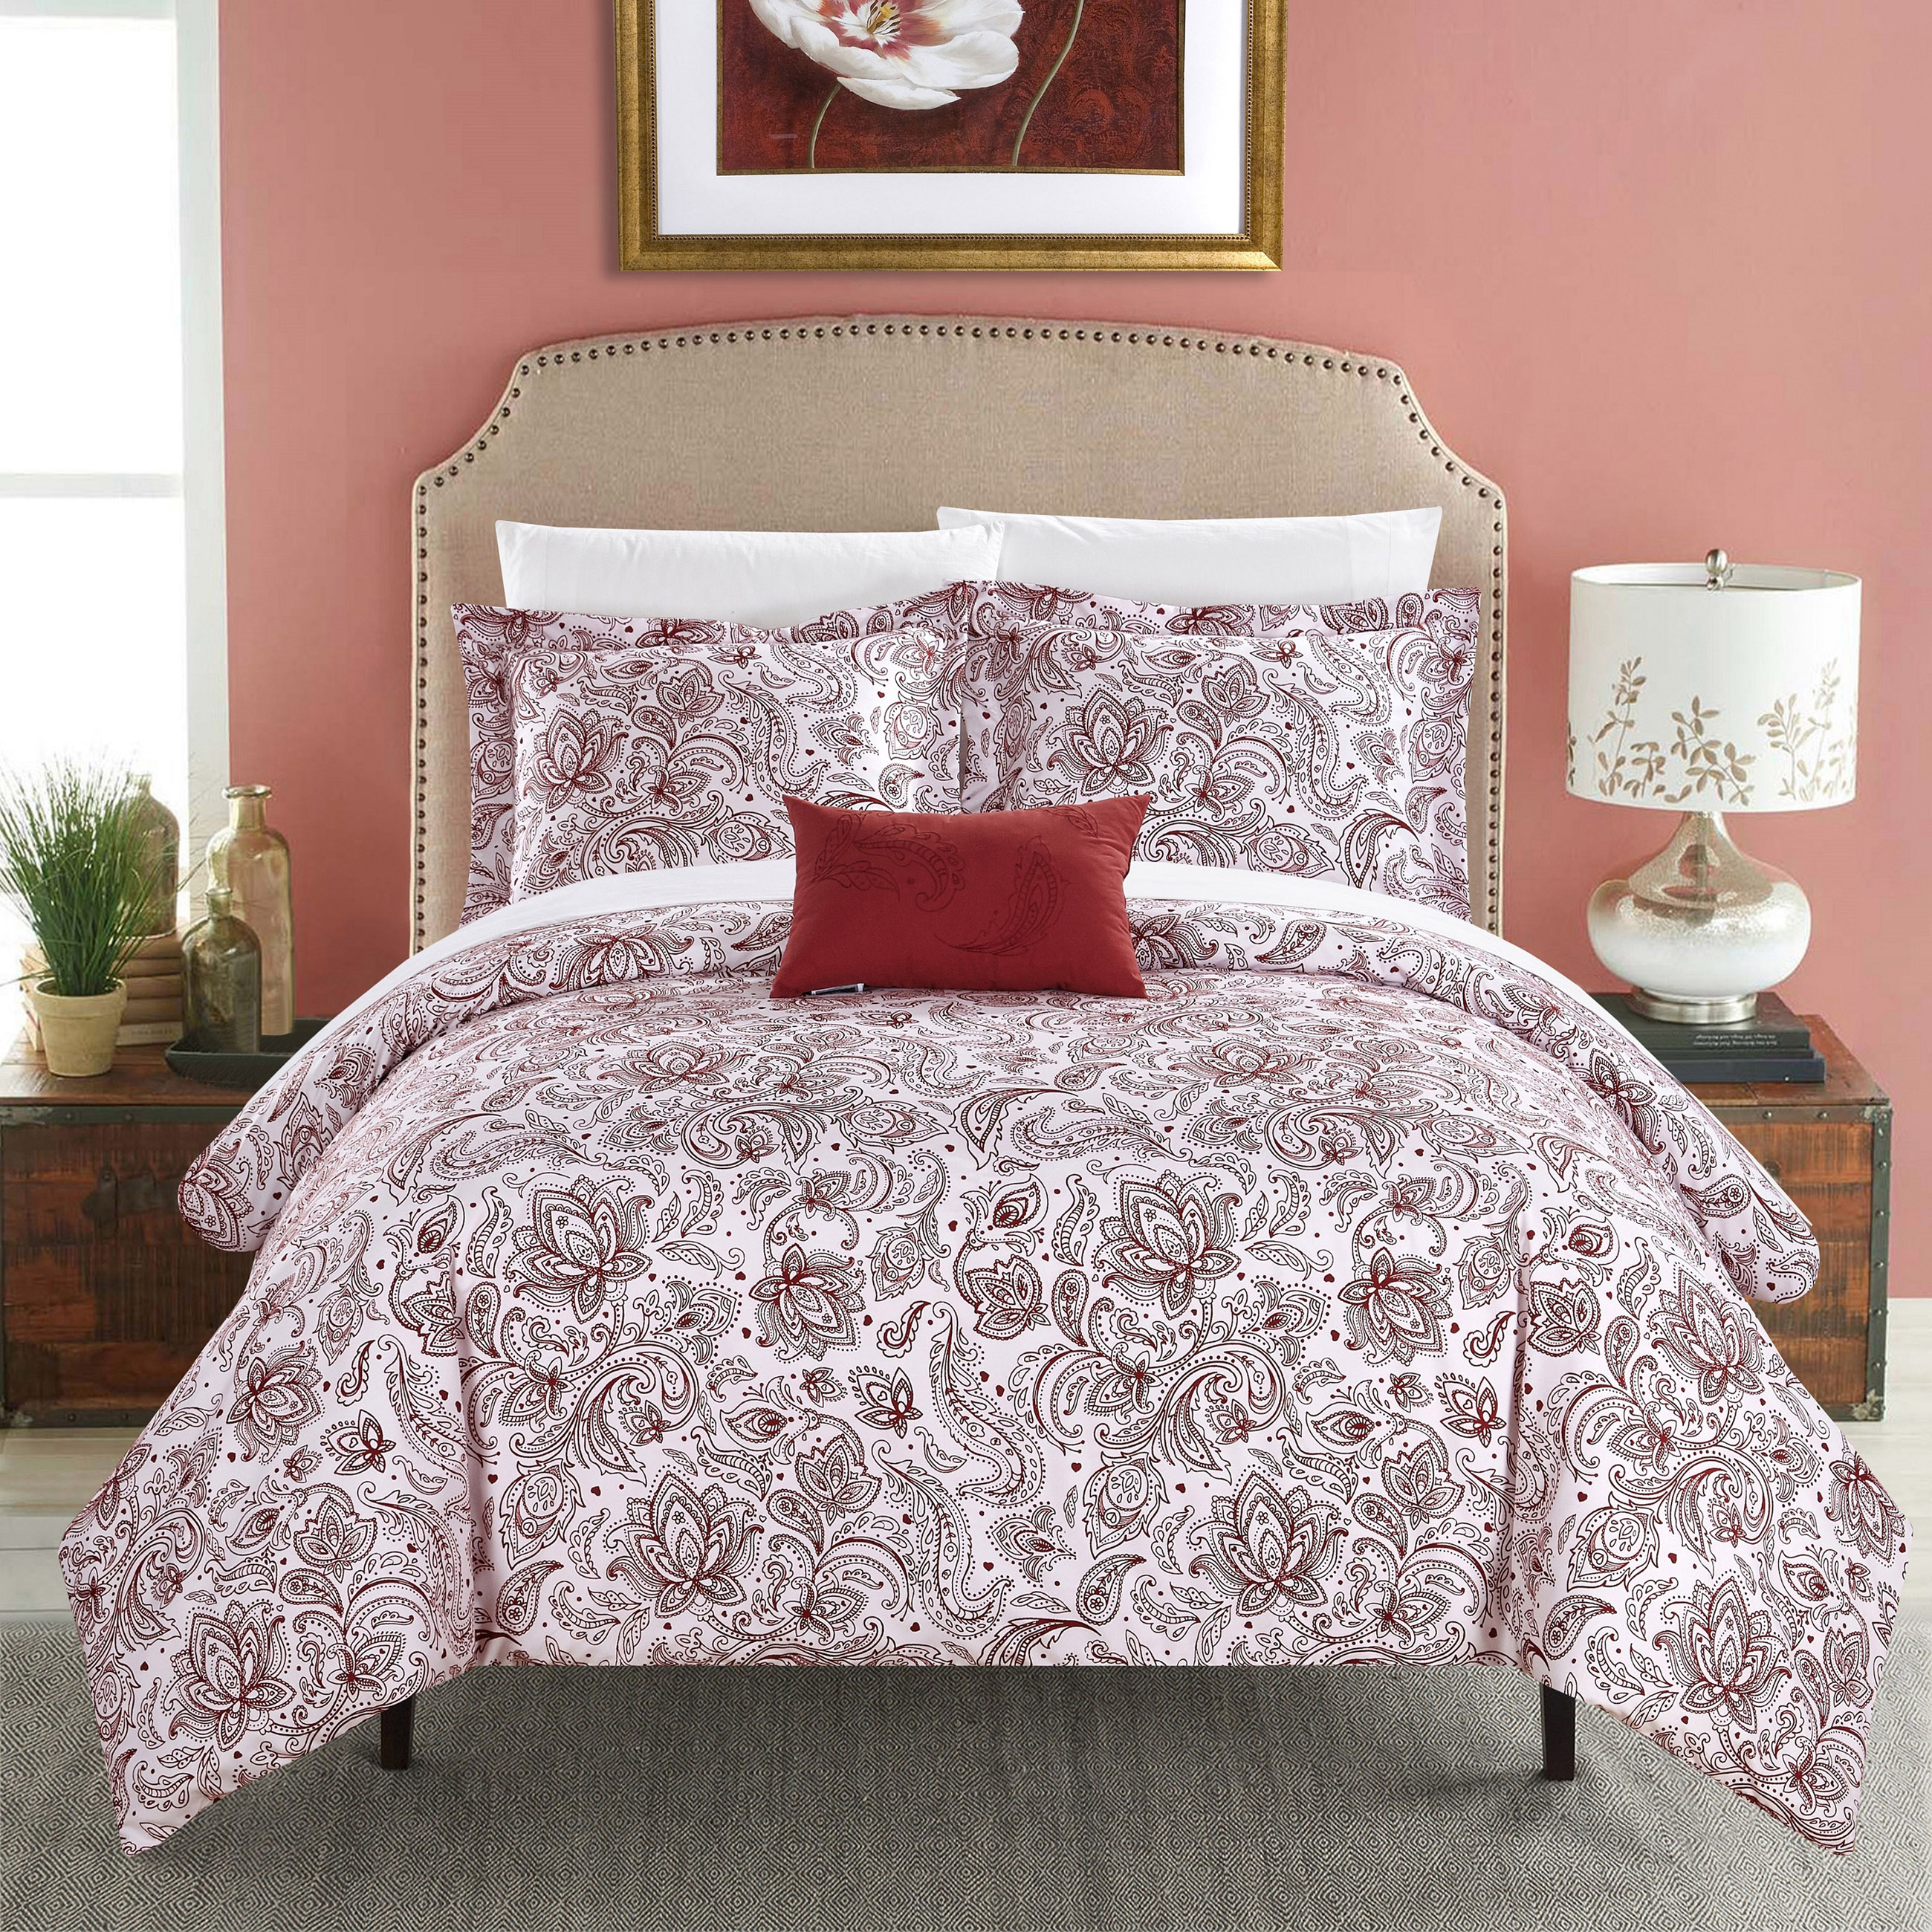 Chic Home 3-Piece Newark Park Super Soft Microfiber Vintage Paisley pattern Printed two tone Super Soft Microfiber Vintage Paisley pattern Printed two tone Duvet Cover Set Brick